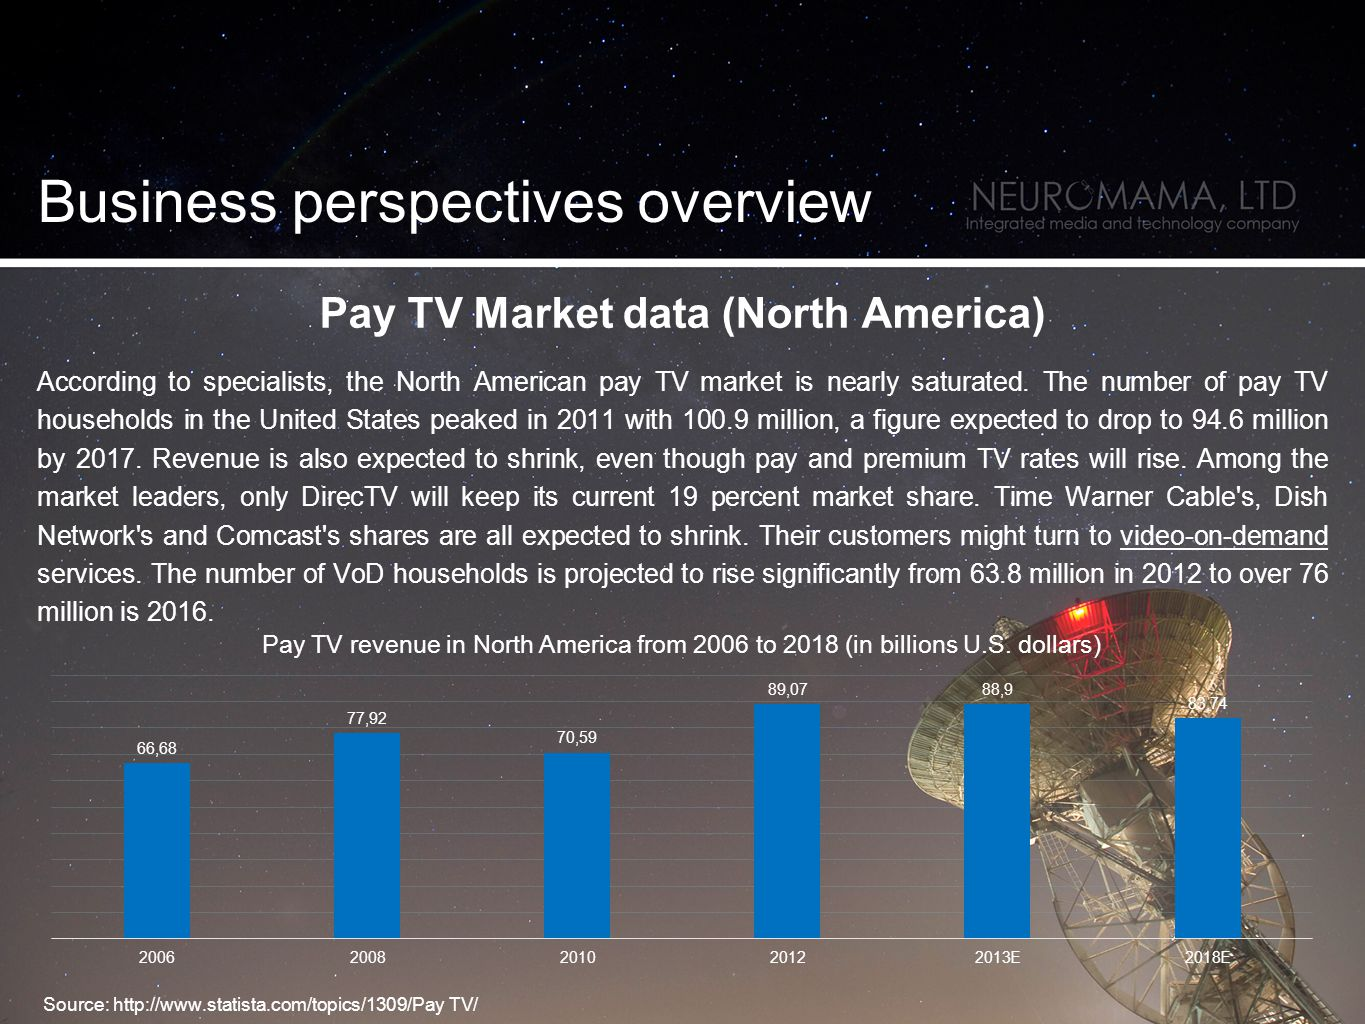 Pay TV Market data (North America) According to specialists, the North American pay TV market is nearly saturated.